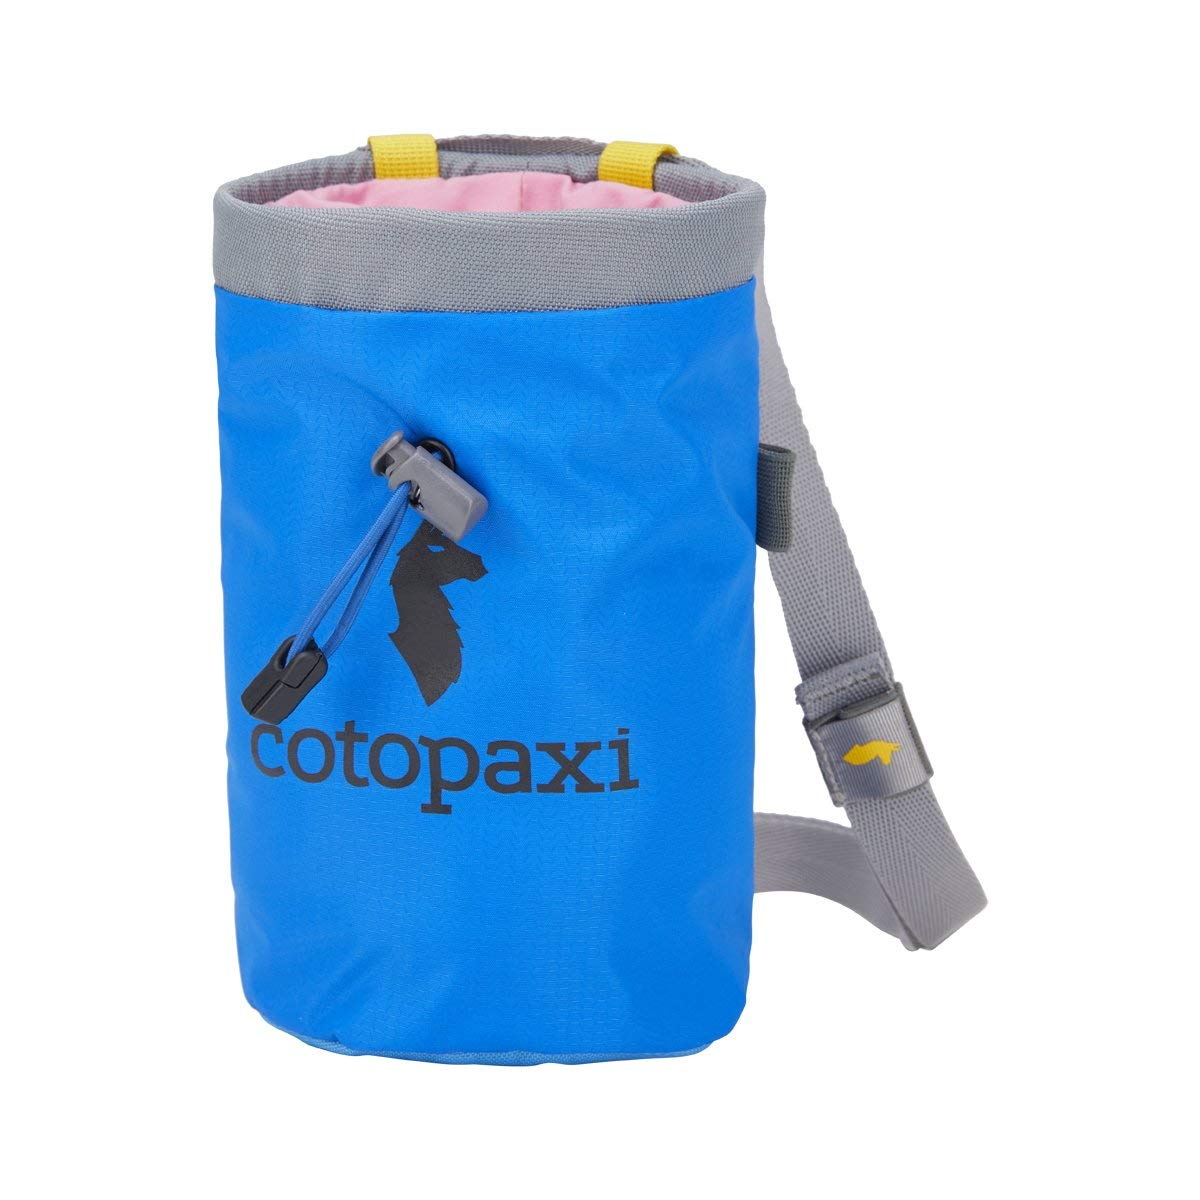 Cotopaxi Halcon Del Dia Chalk Bag – Del Dia One of A Kind